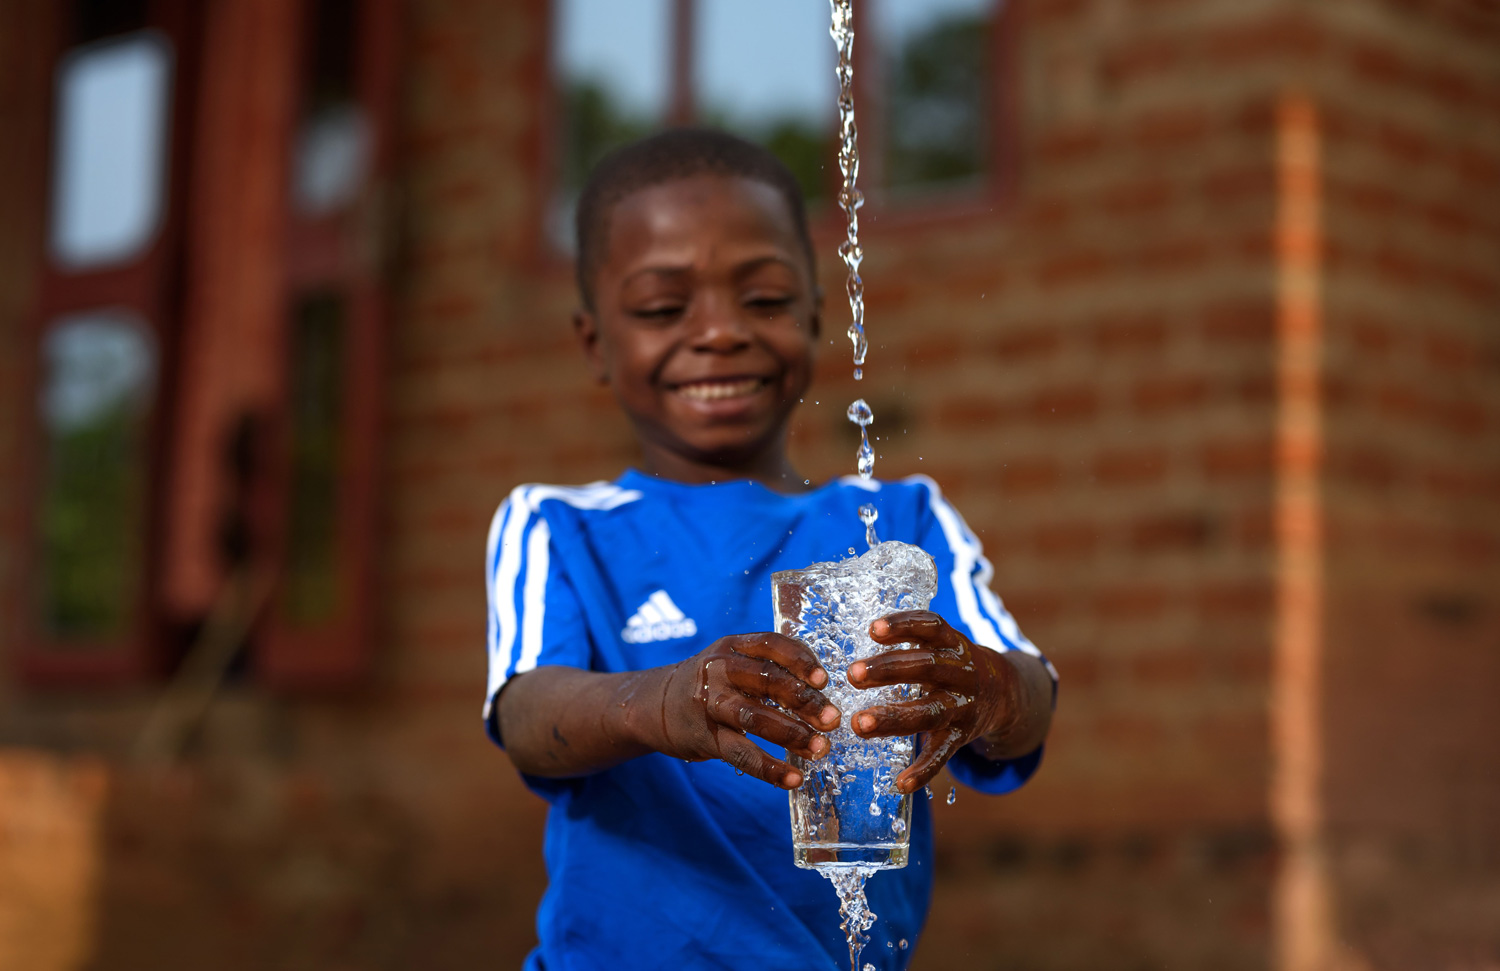 A stream of water being poured into a glass of water held by a happy little boy.